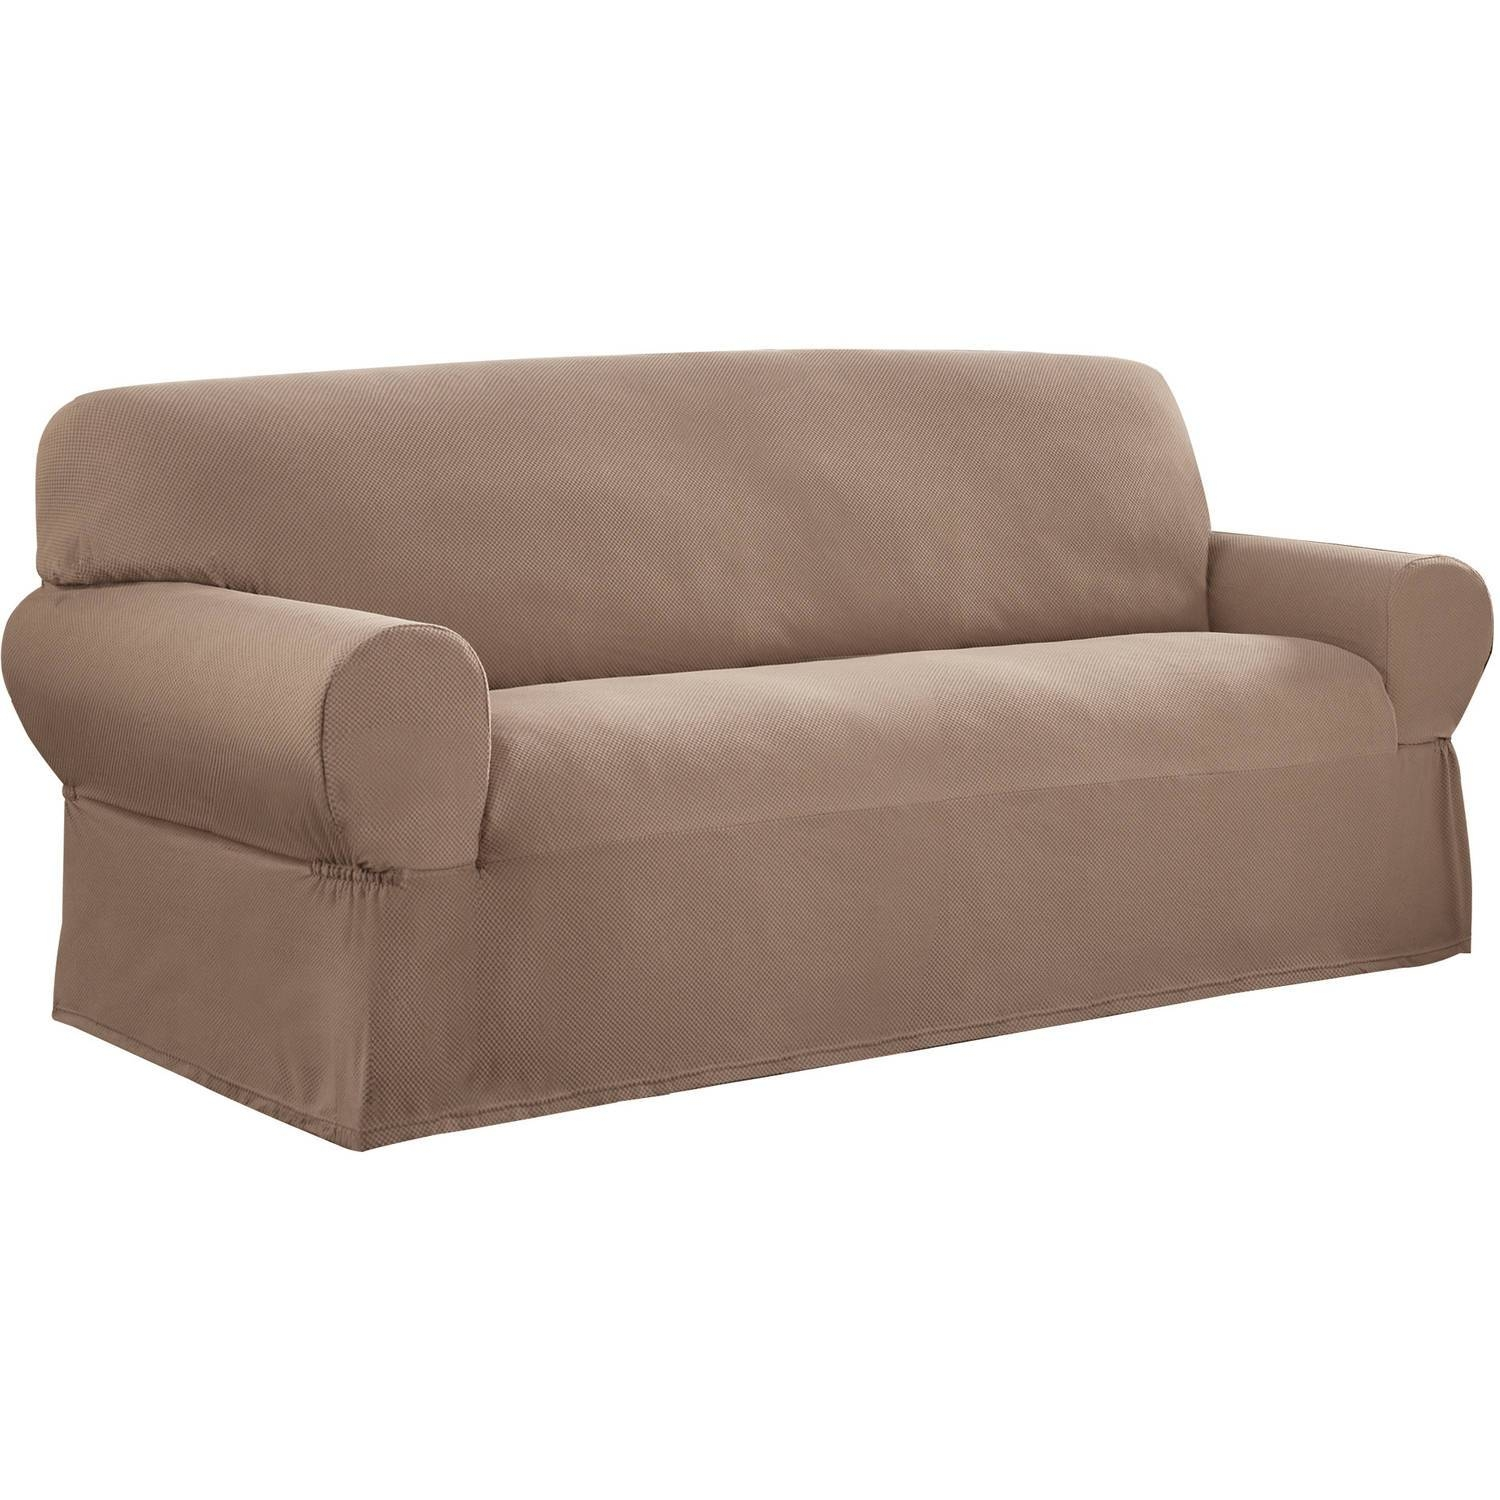 Mainstays 1-Piece Stretch Fabric Sofa Slipcover - Walmart with regard to 3 Piece Sofa Covers (Image 12 of 15)